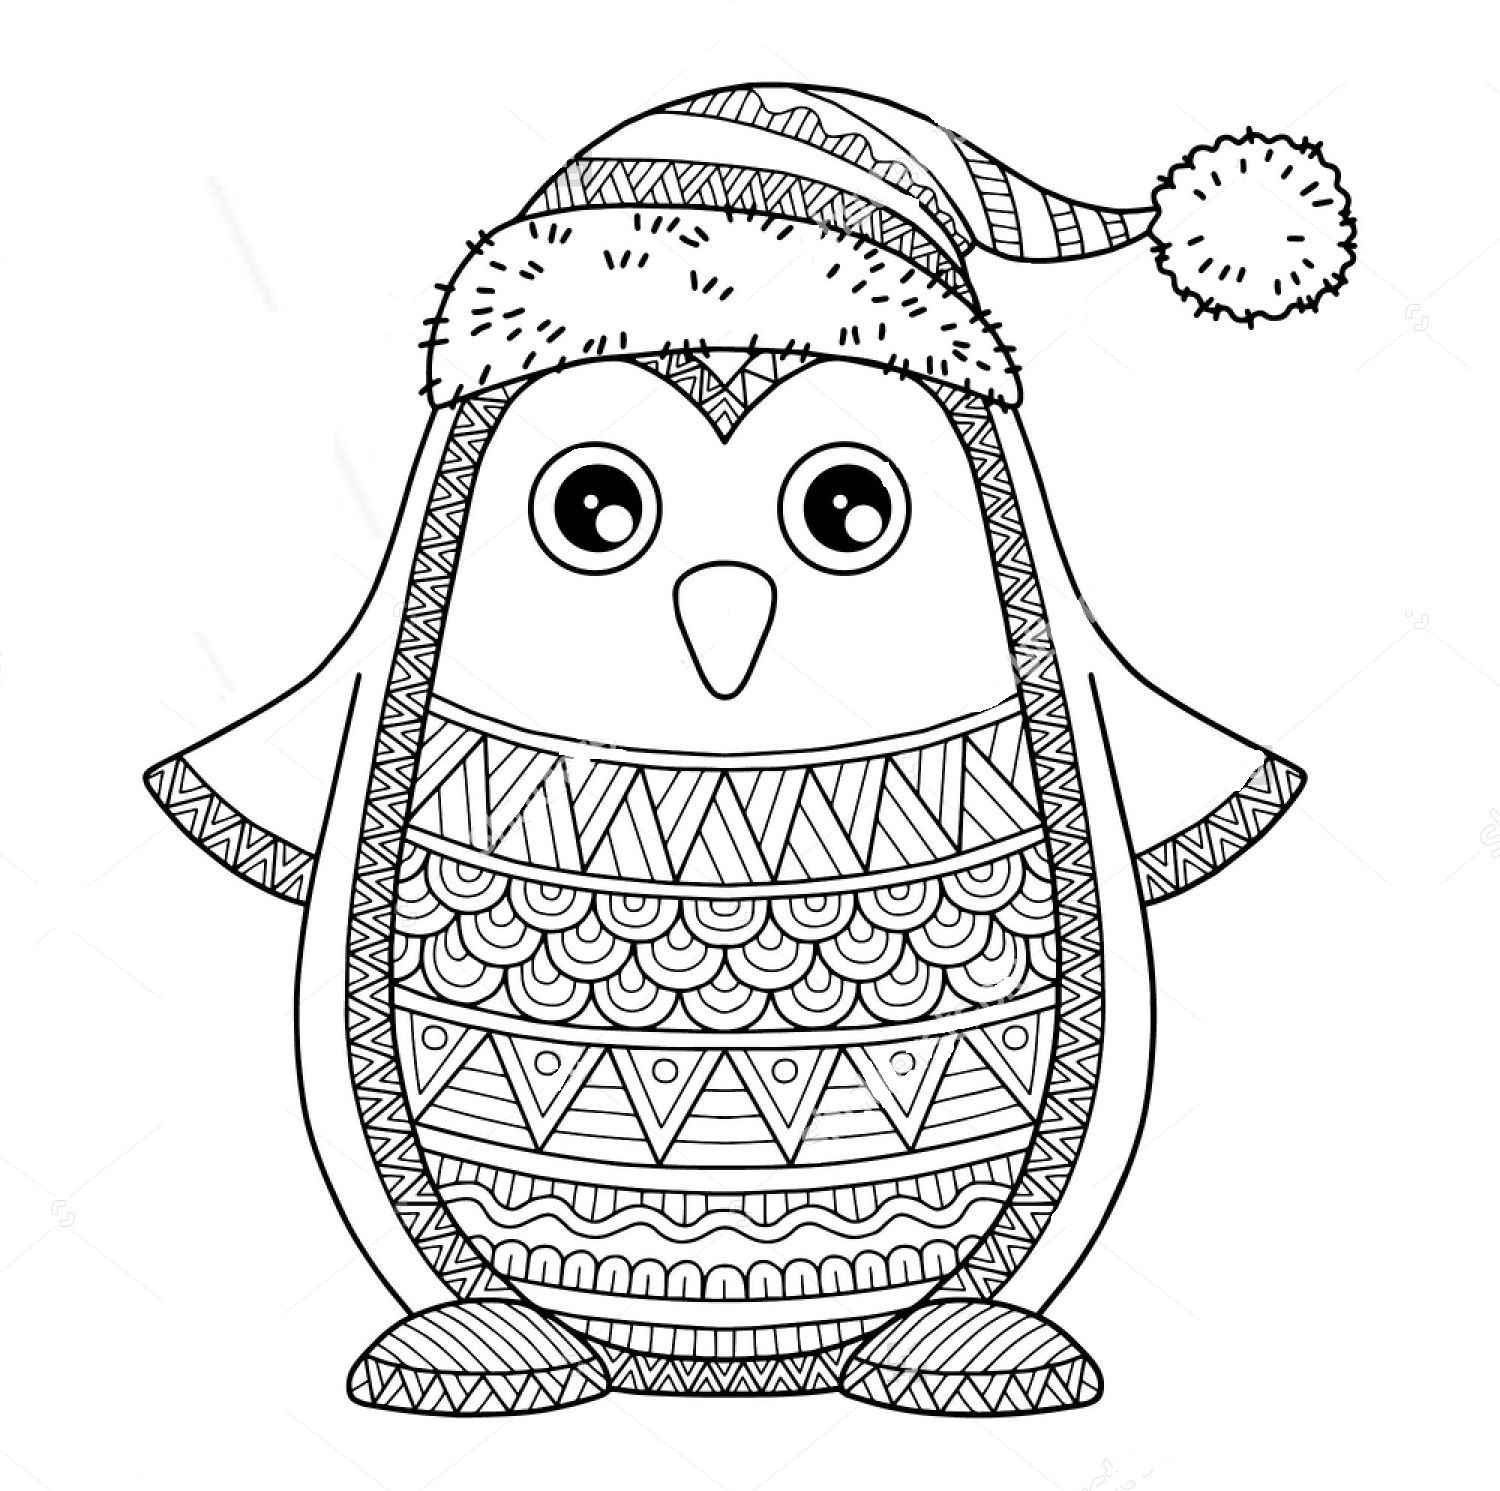 Christmas zentangle coloring page (With images ...